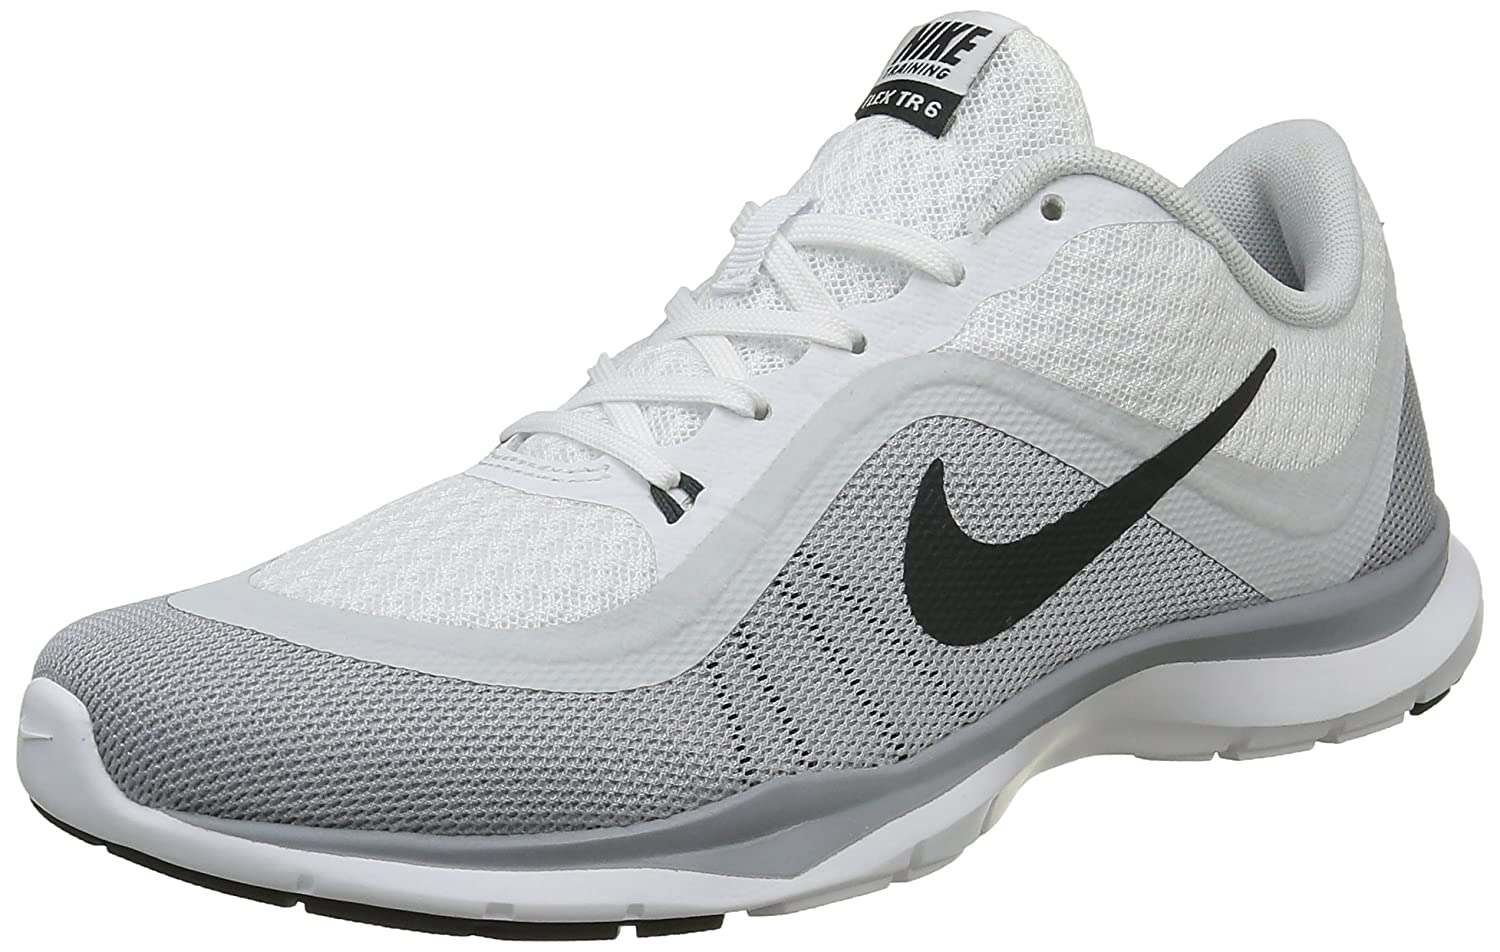 NIKE Women's Flex Trainer 6 B014IDLDQY 9 B(M) US|White/Dark Grey